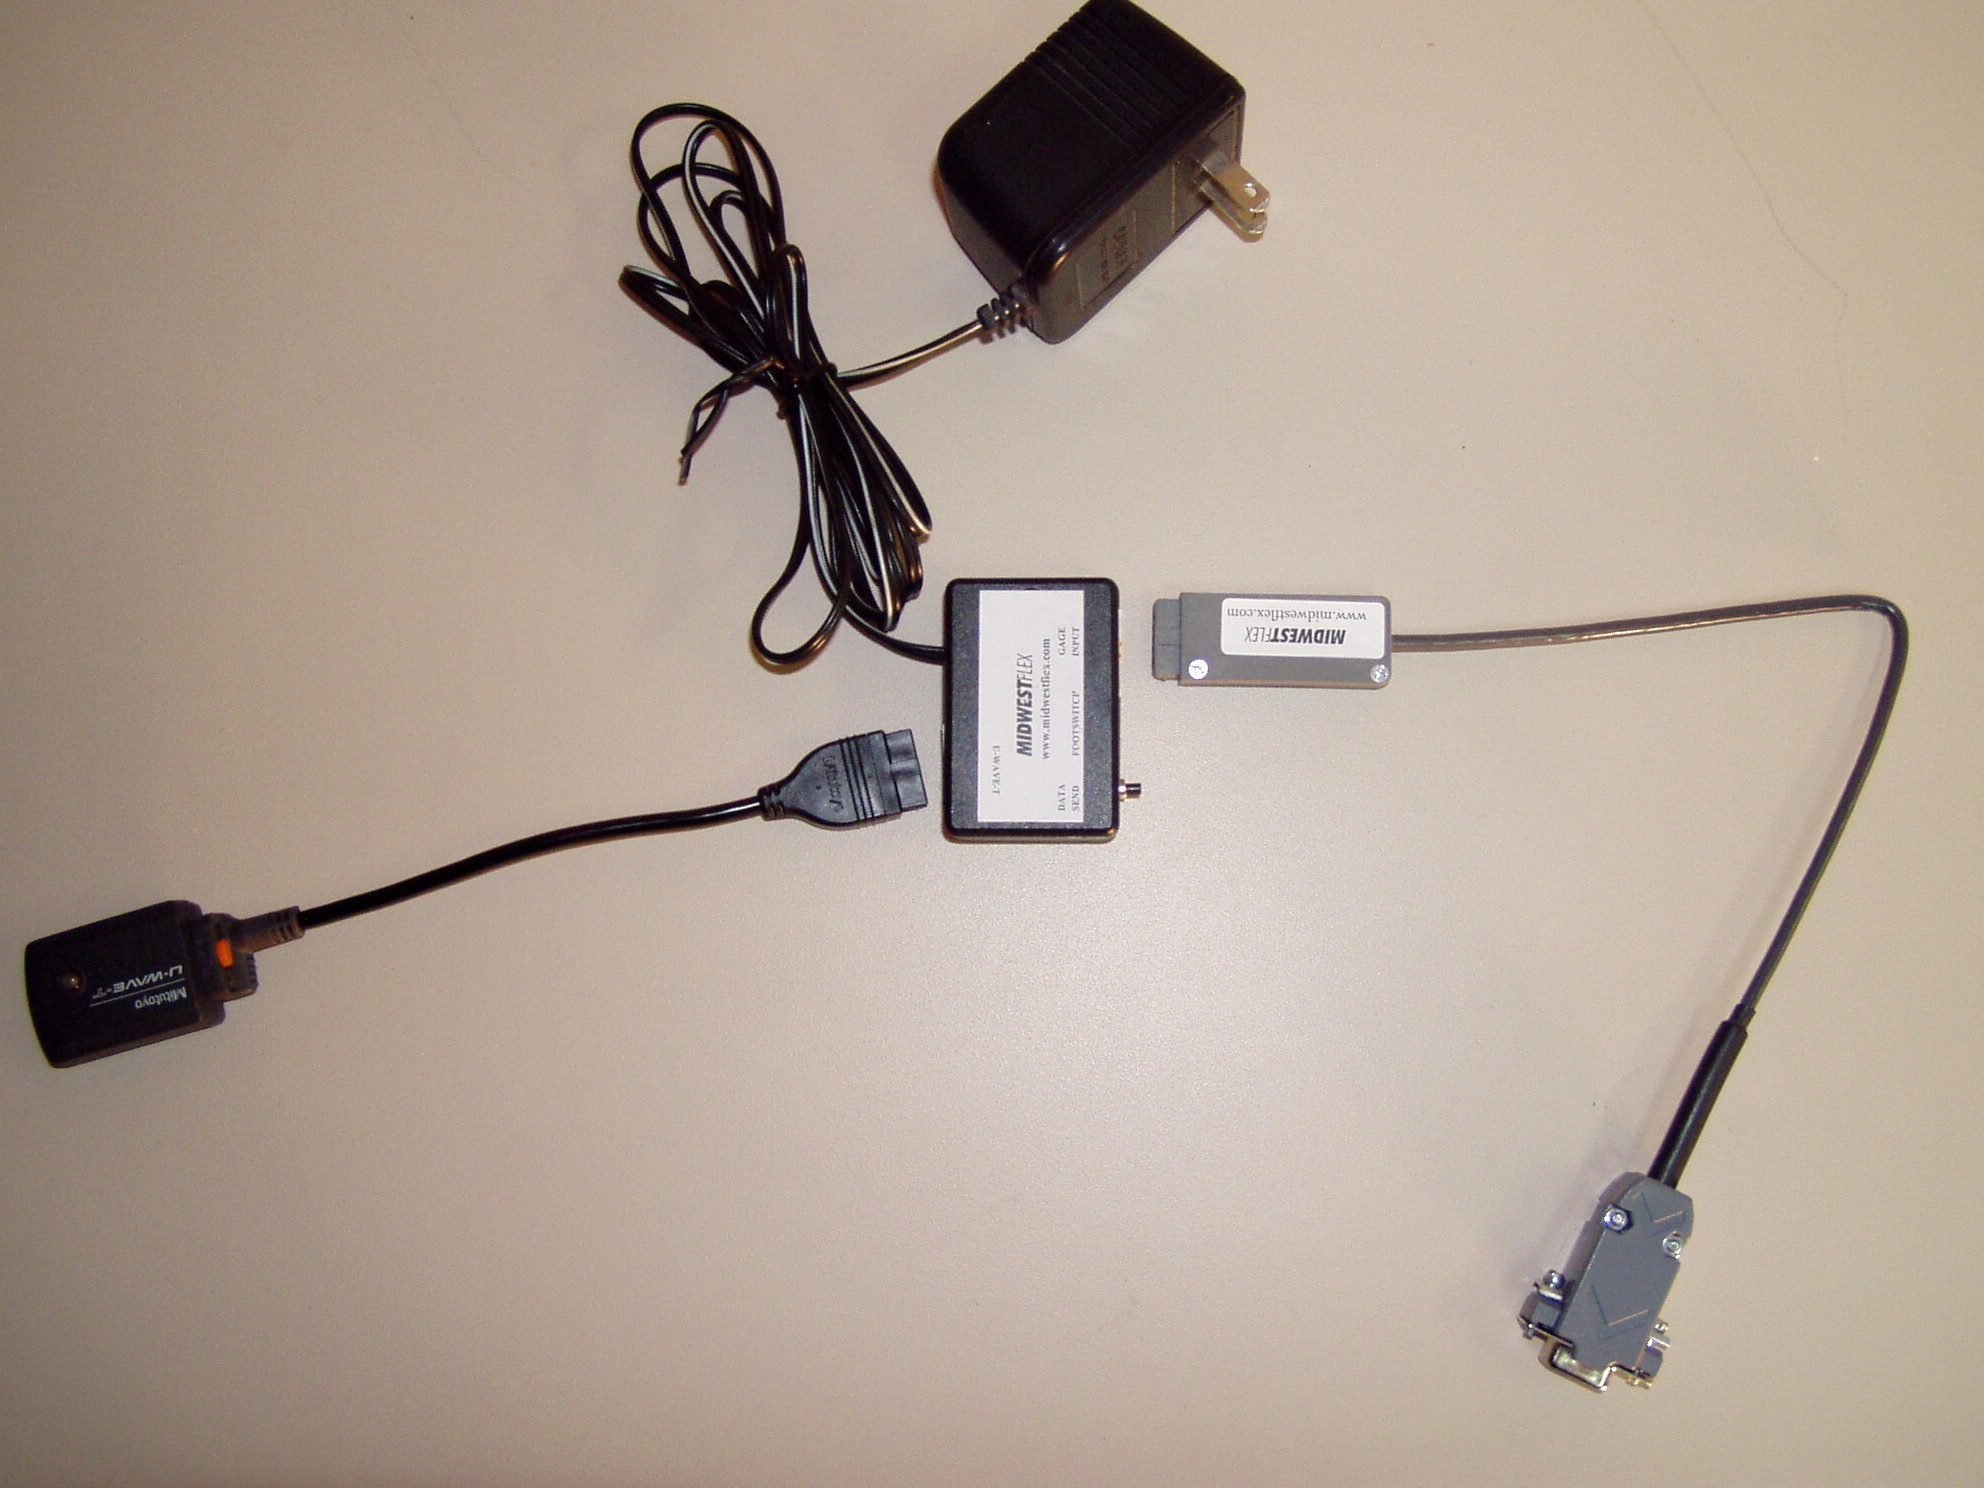 FC Adapter with U-Wave transmitter and serial cable